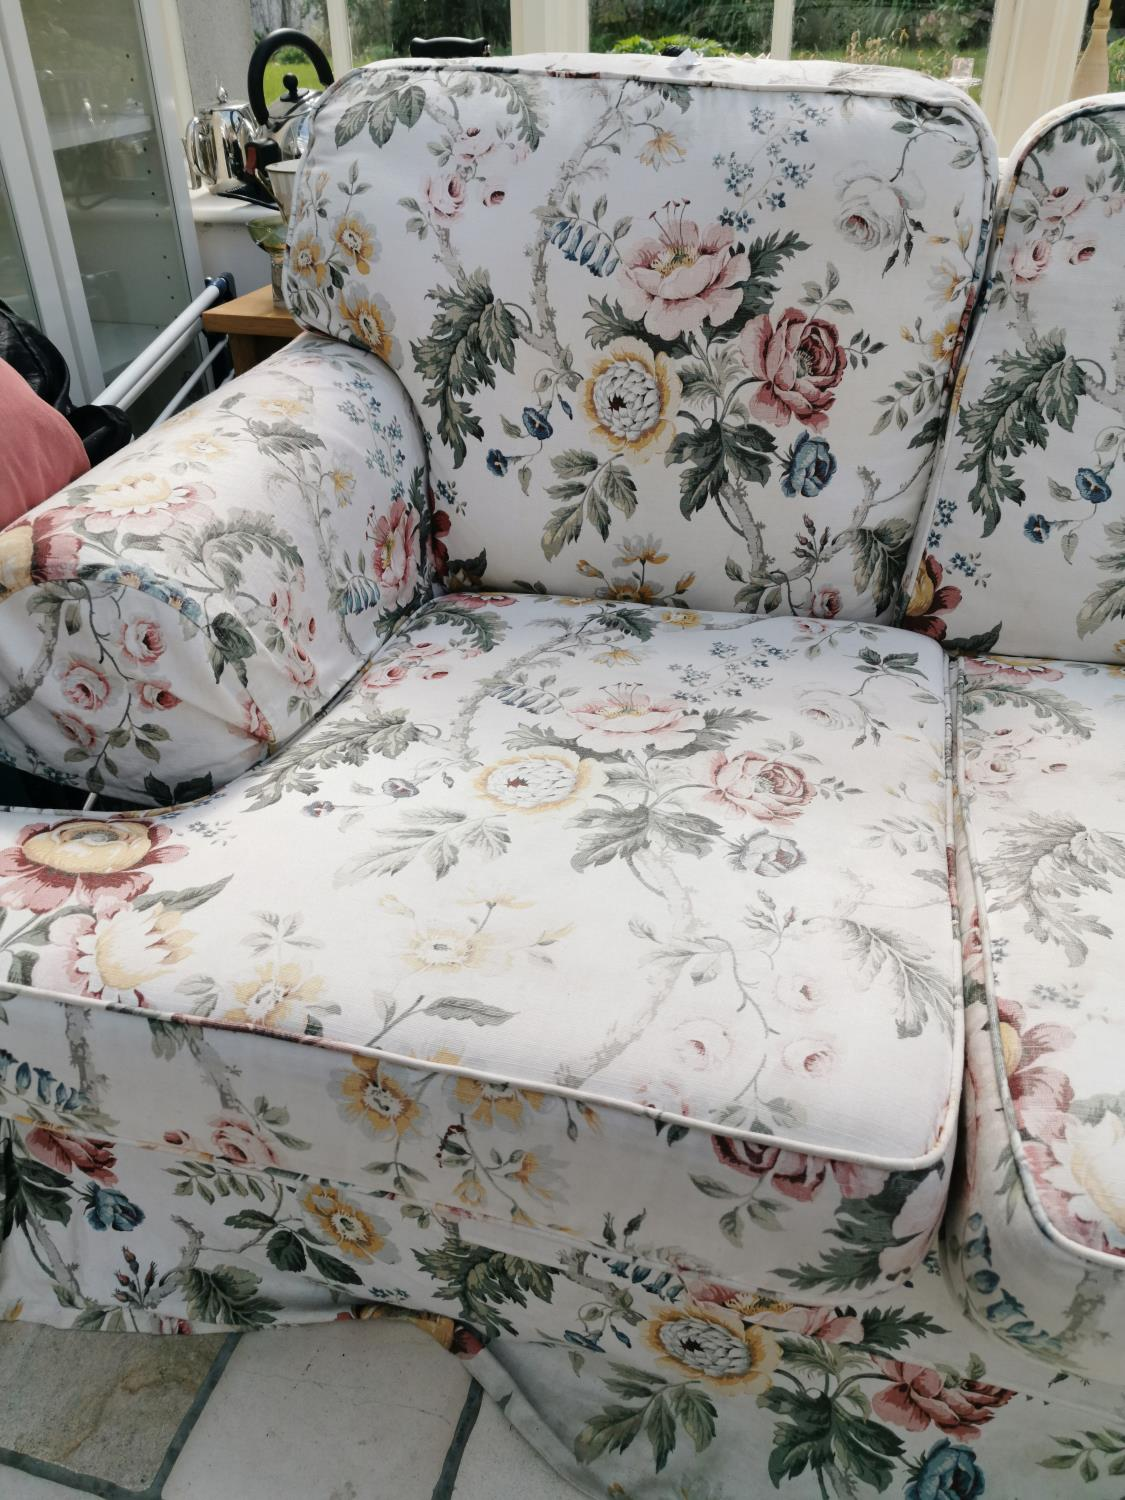 20th. C. three seater upholstered chesterfield couch - Image 2 of 2